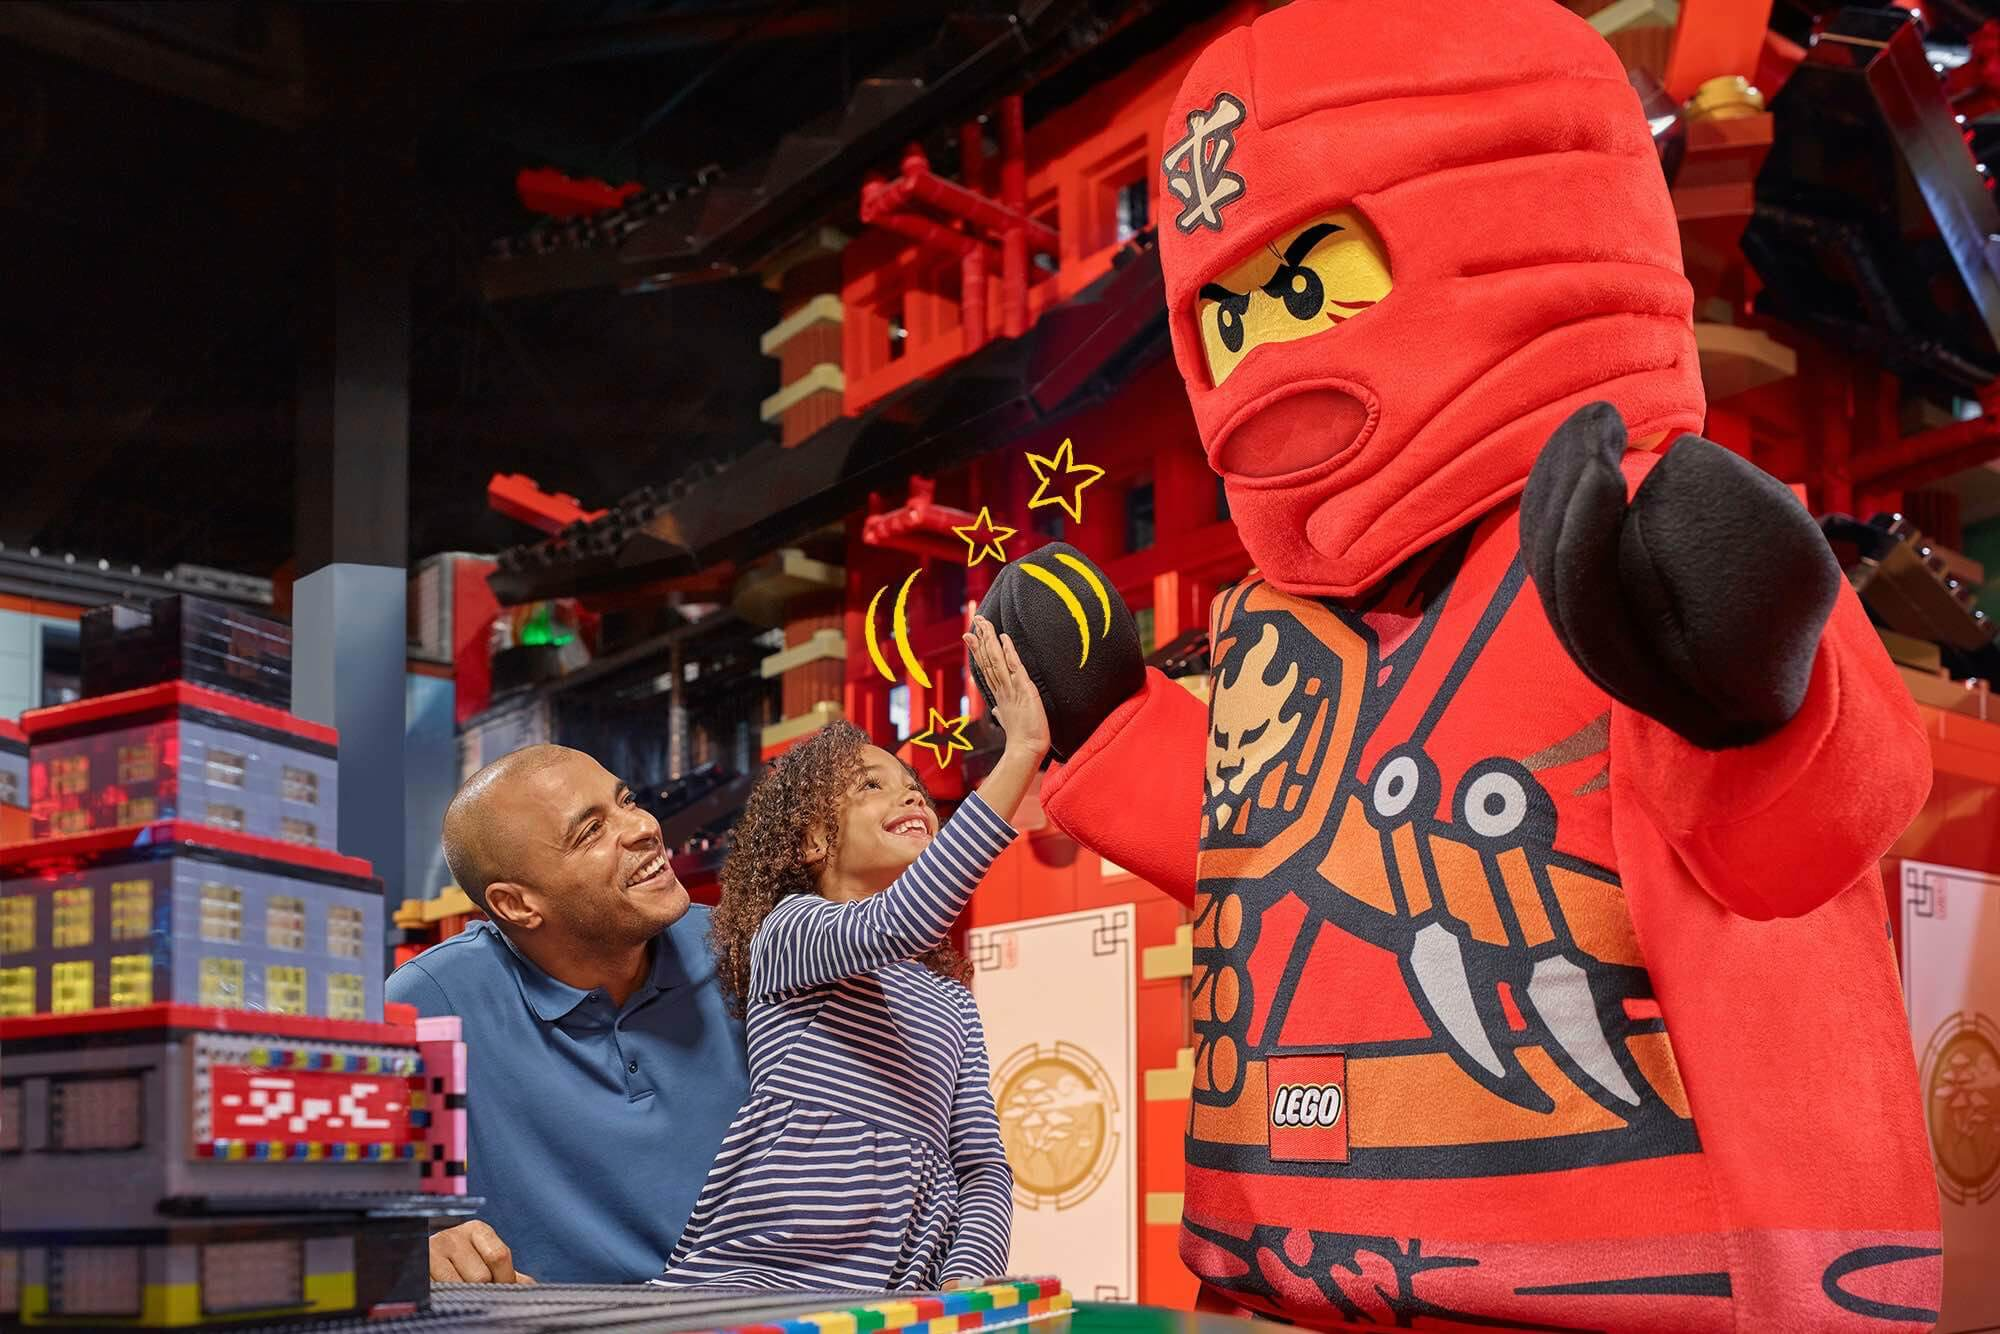 LEGOLAND Discovery Center Michigan's Ninjago Days